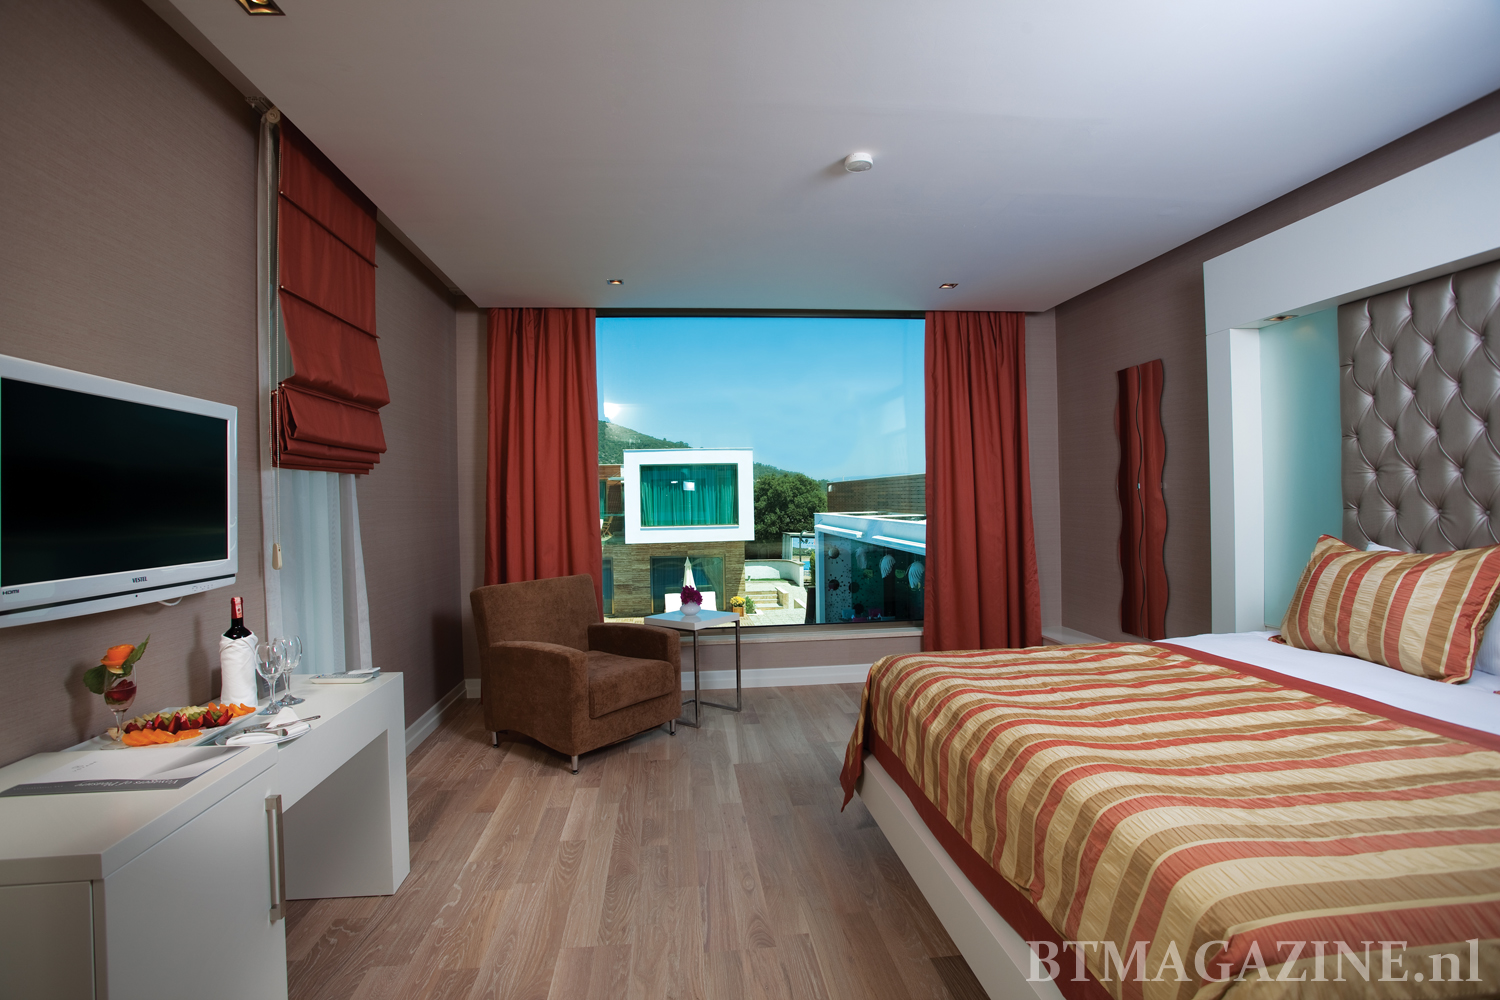 Voyage Torba Private Business Travel Magazinebusiness